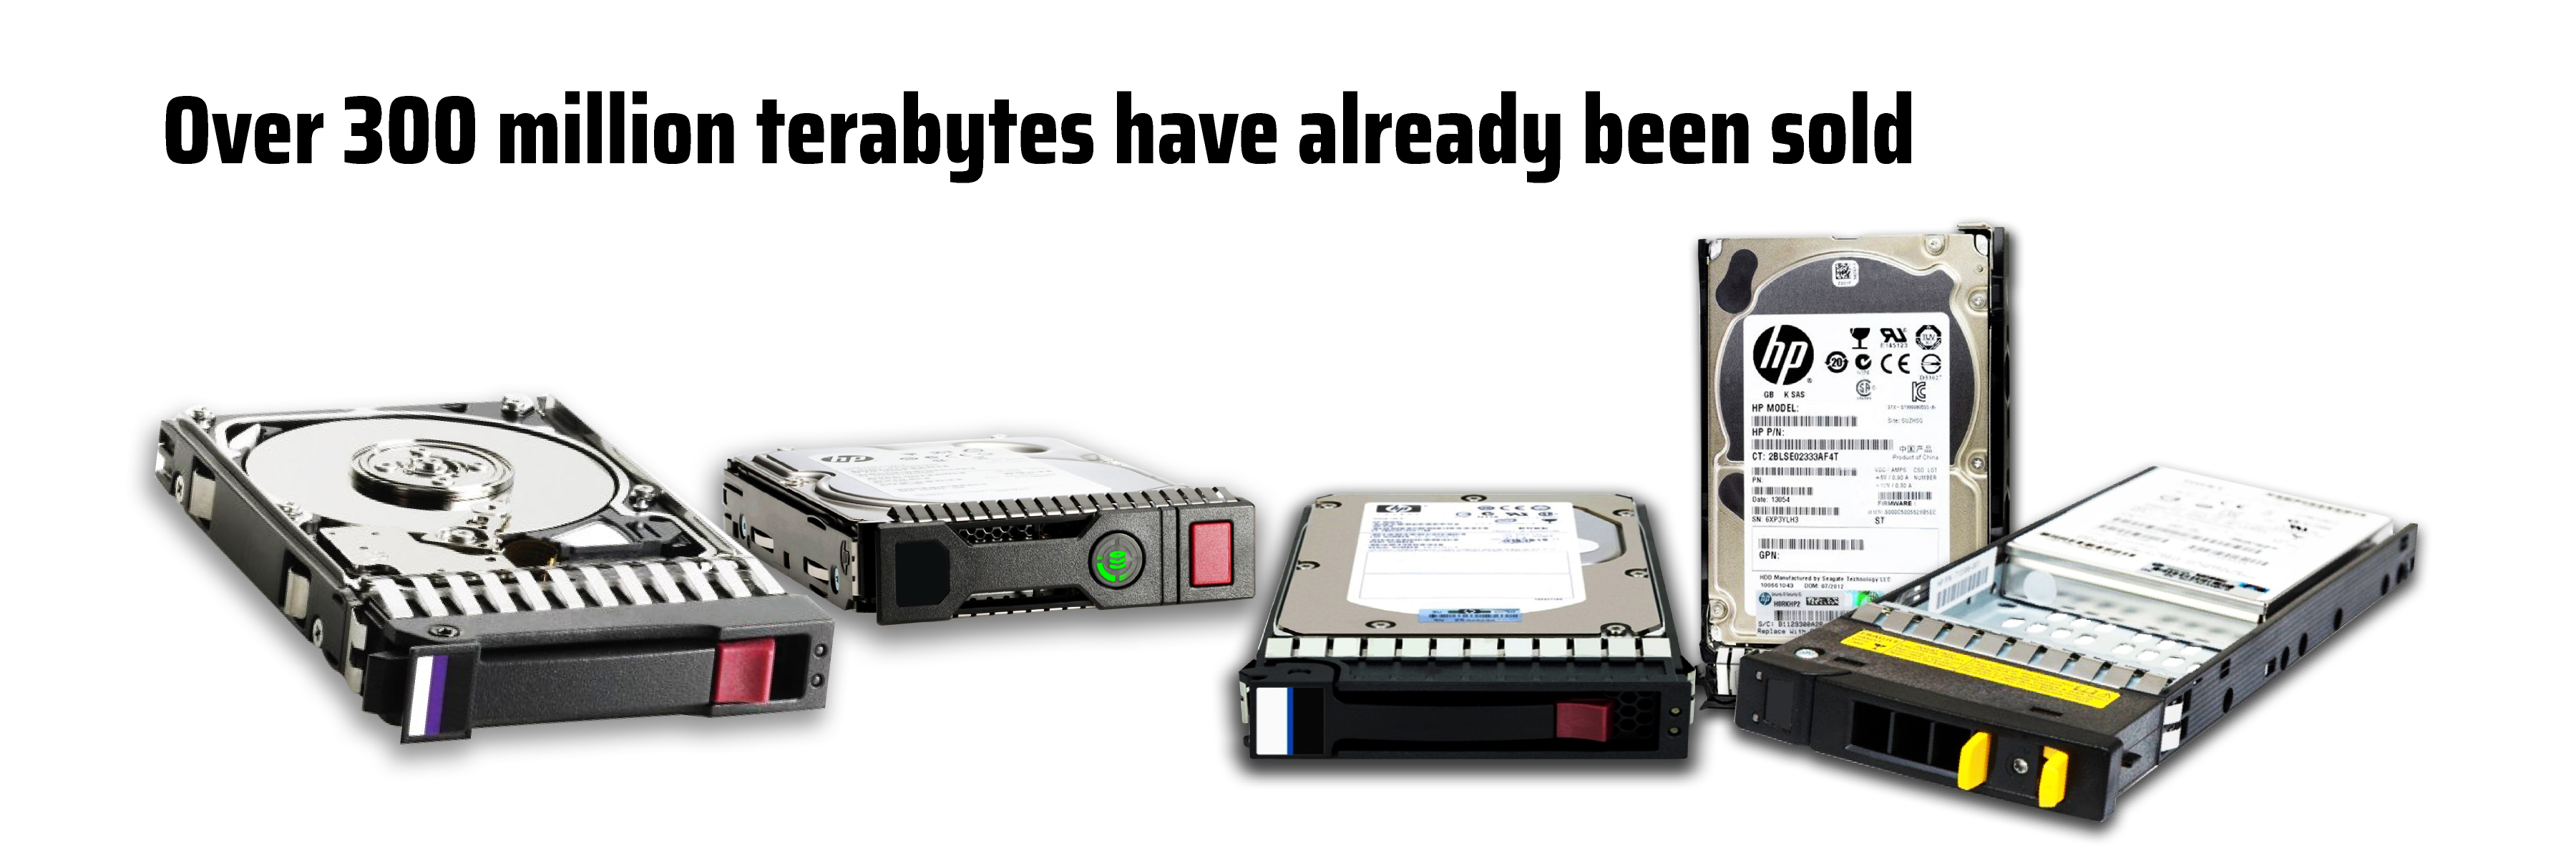 Over 300 million terabytes have already been sold